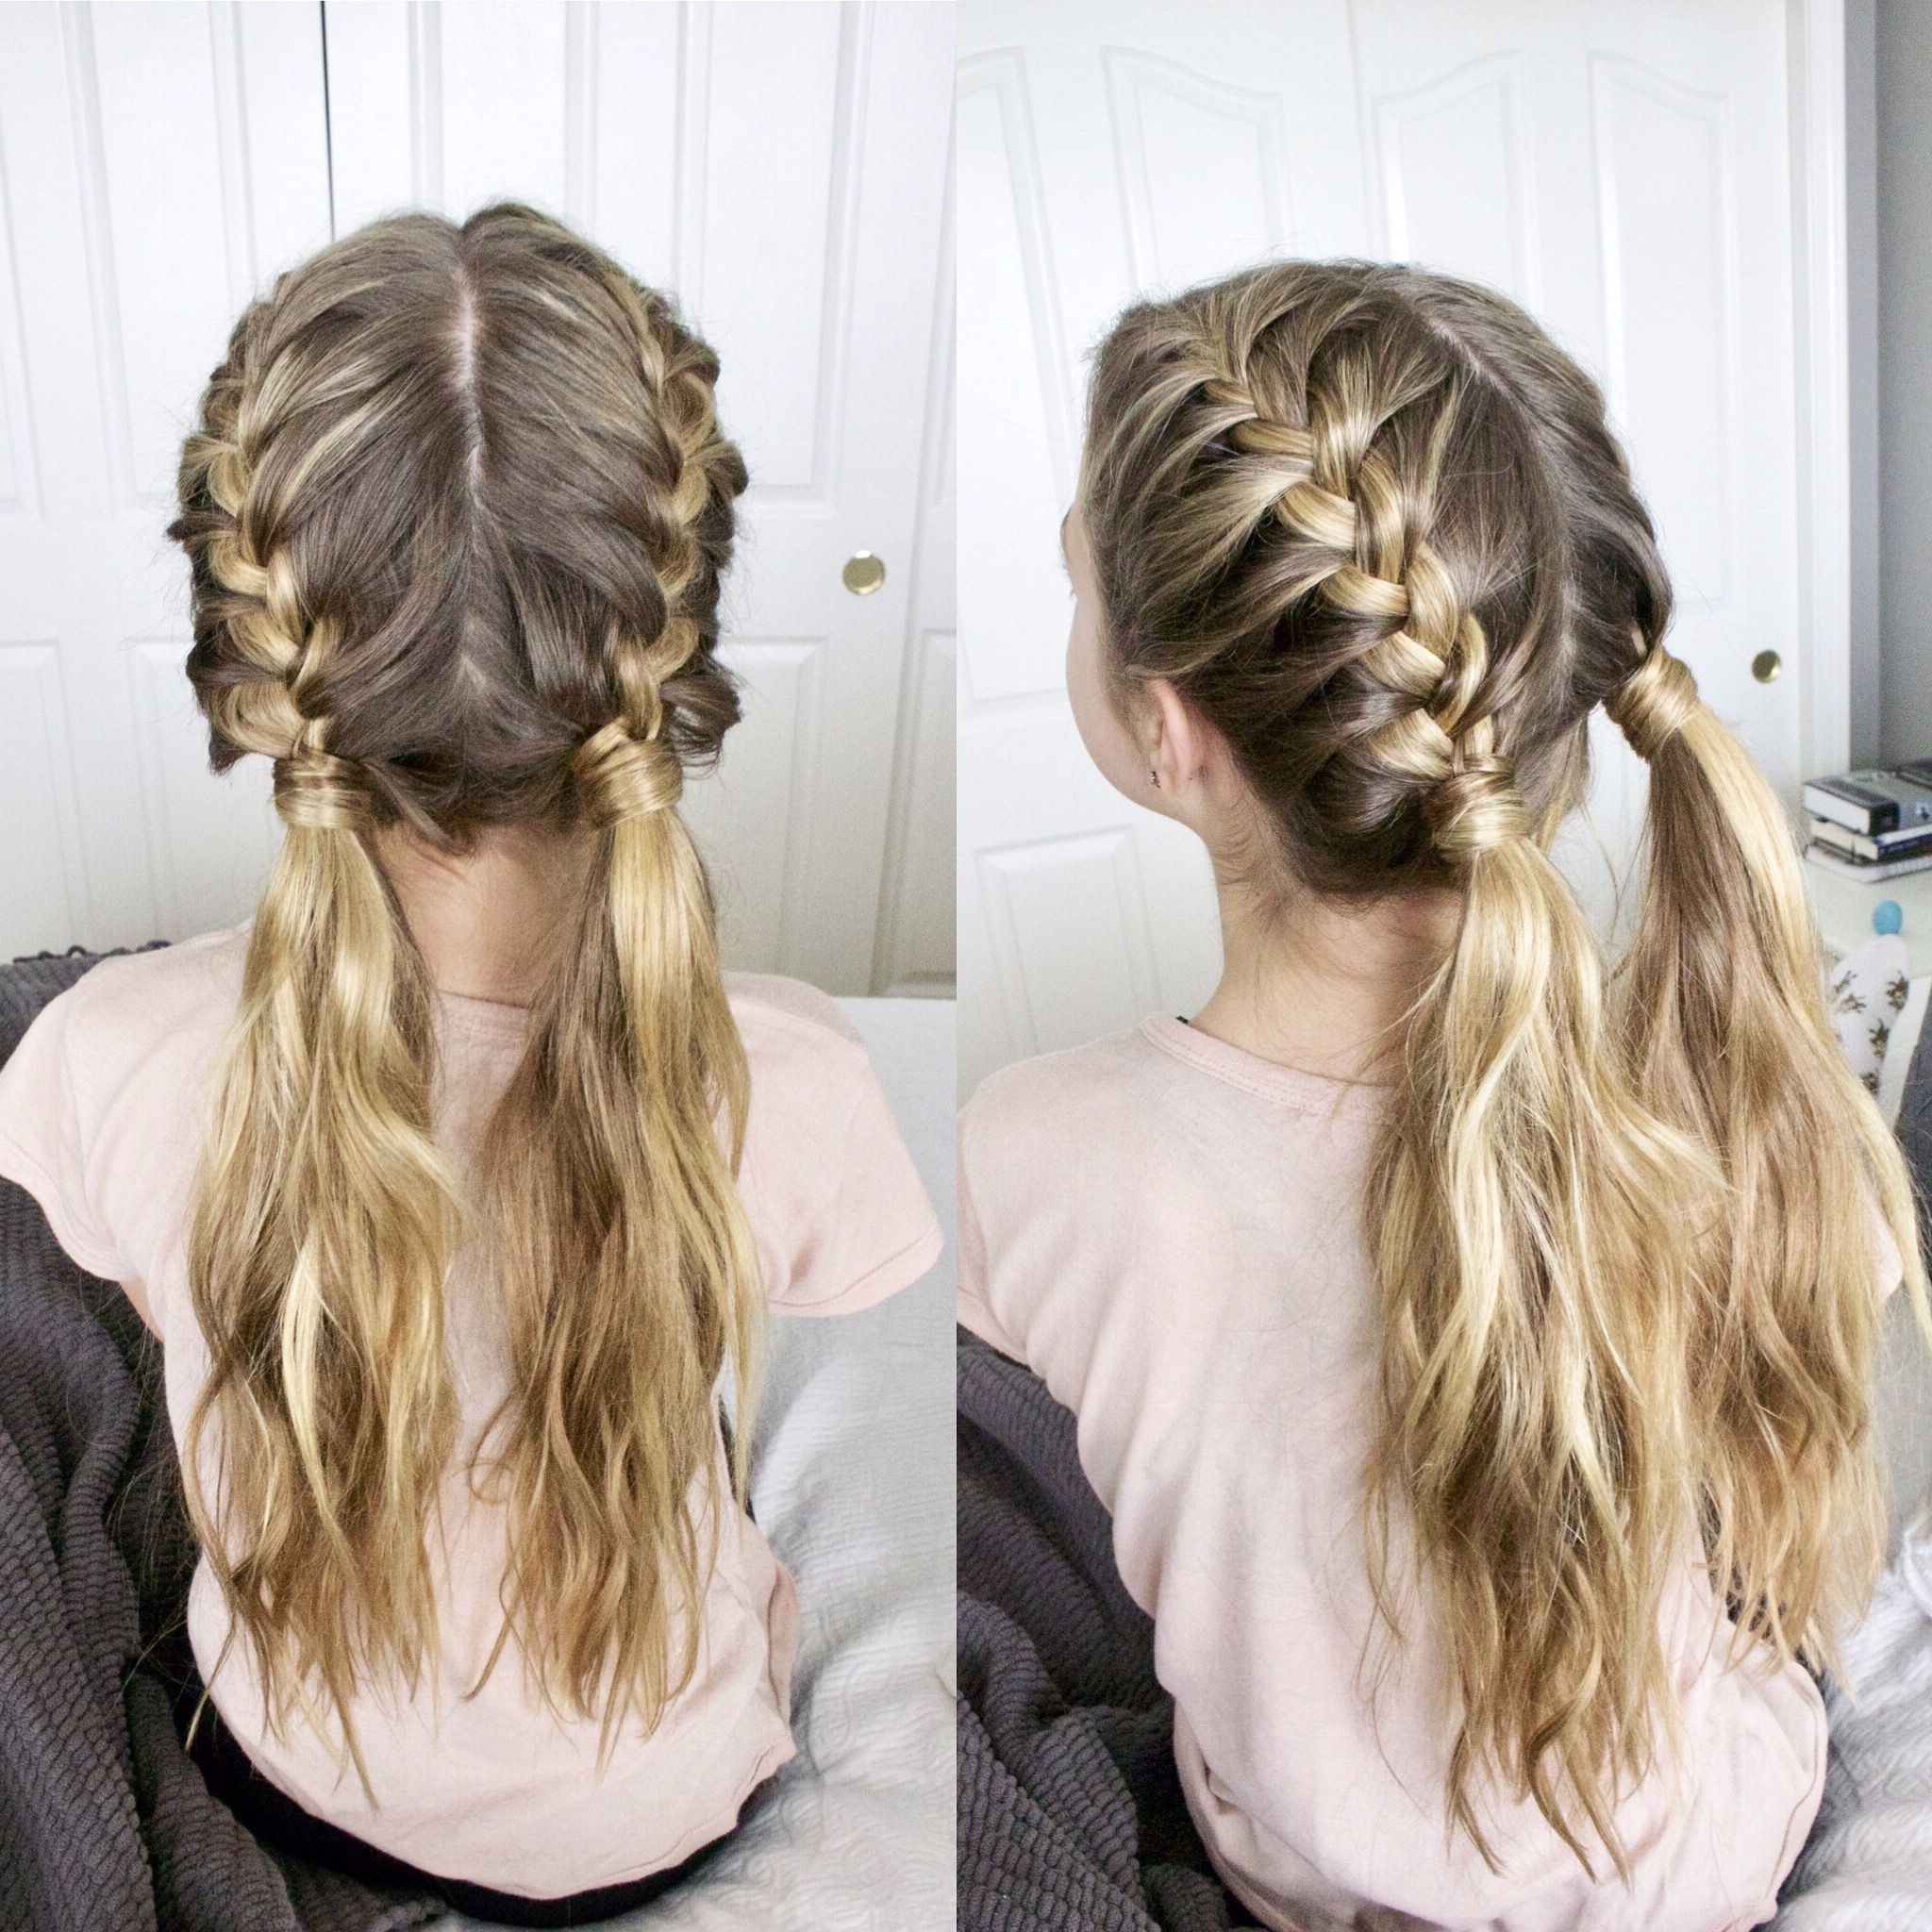 Two French Braids Into Messy Pigtails (View 20 of 20)